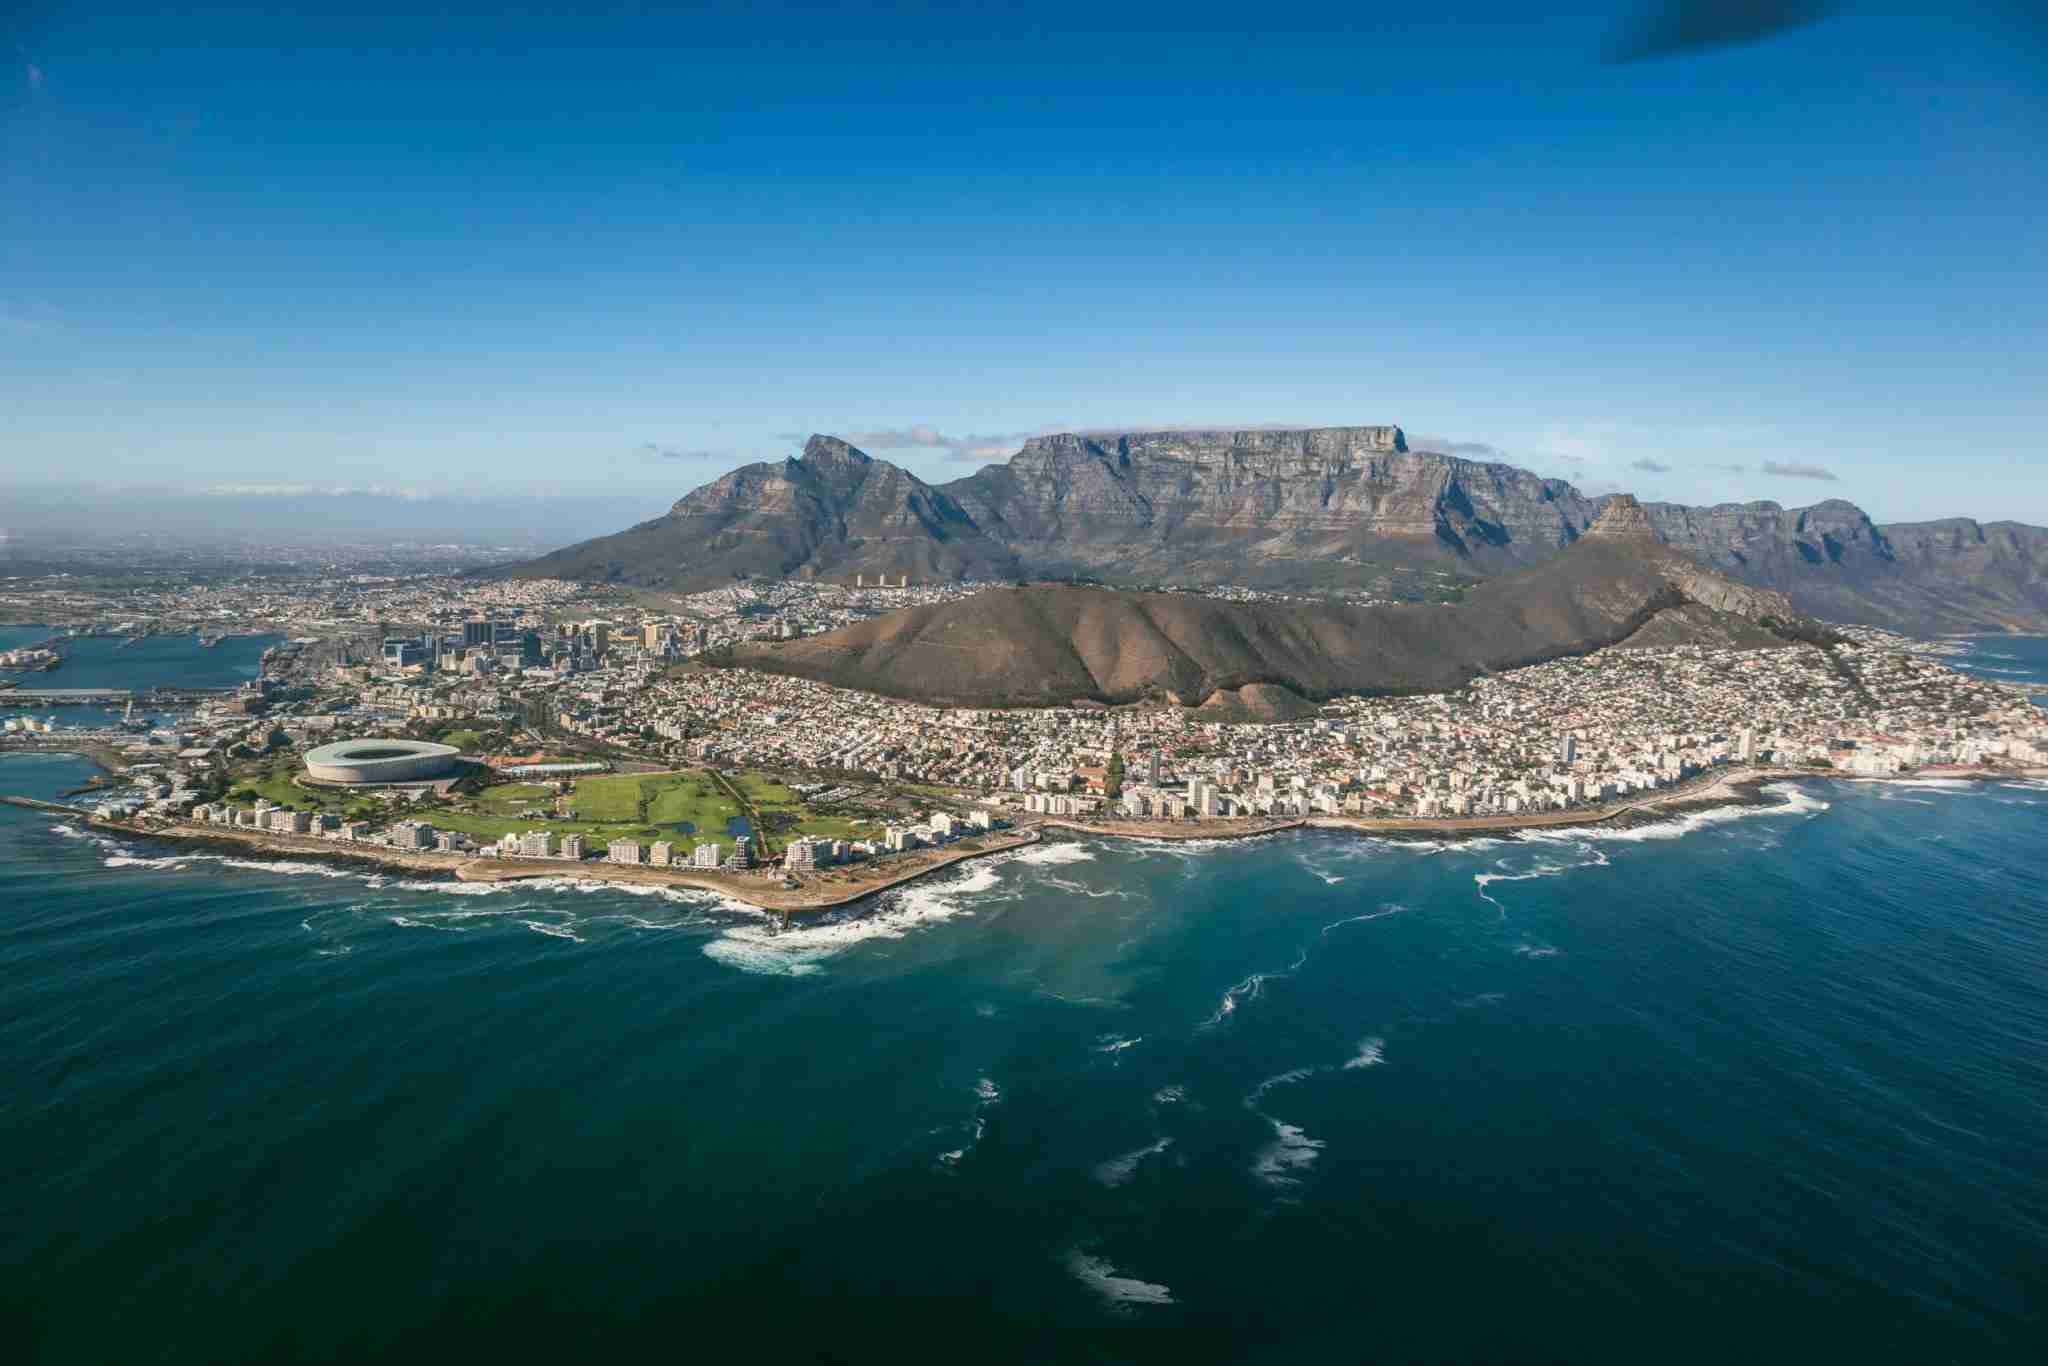 An Aerial view of Cape Town, South Africa (Photo by Christopher Loh/Getty Images)